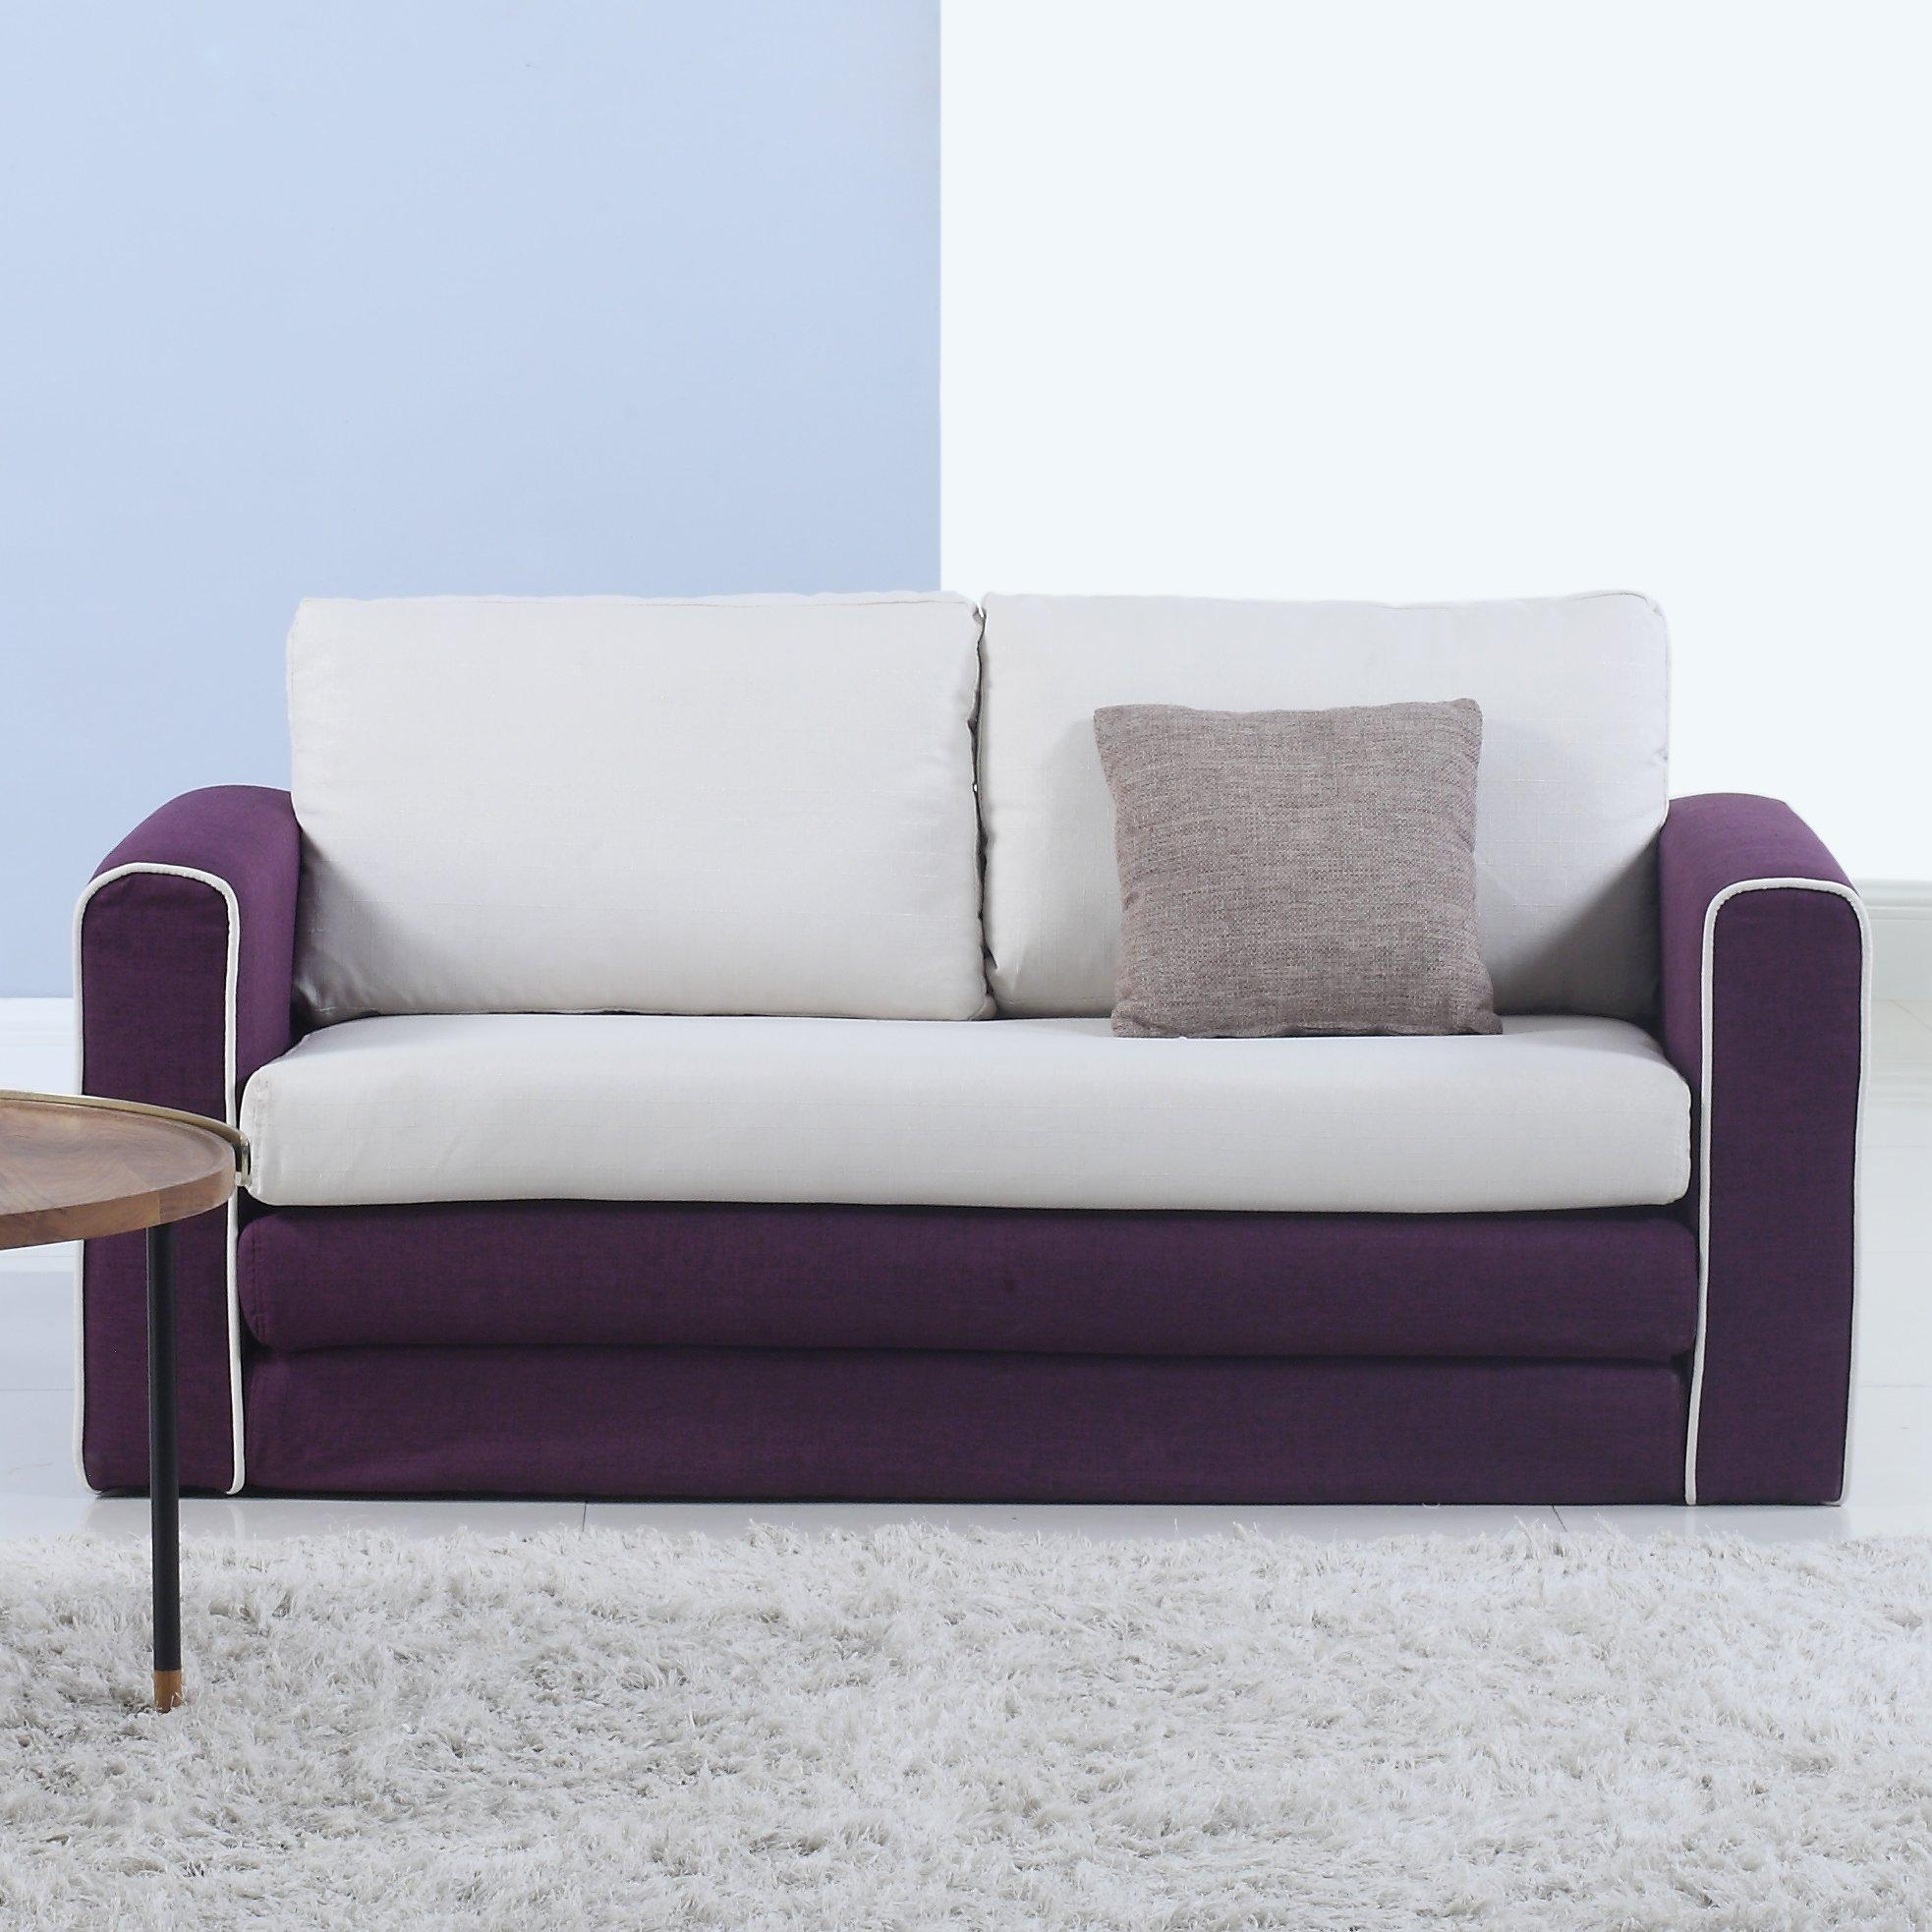 Ava Velvet Sleeper Sofa | Tehranmix Decoration Intended For Ava Tufted Sleeper Sofas (Image 2 of 20)